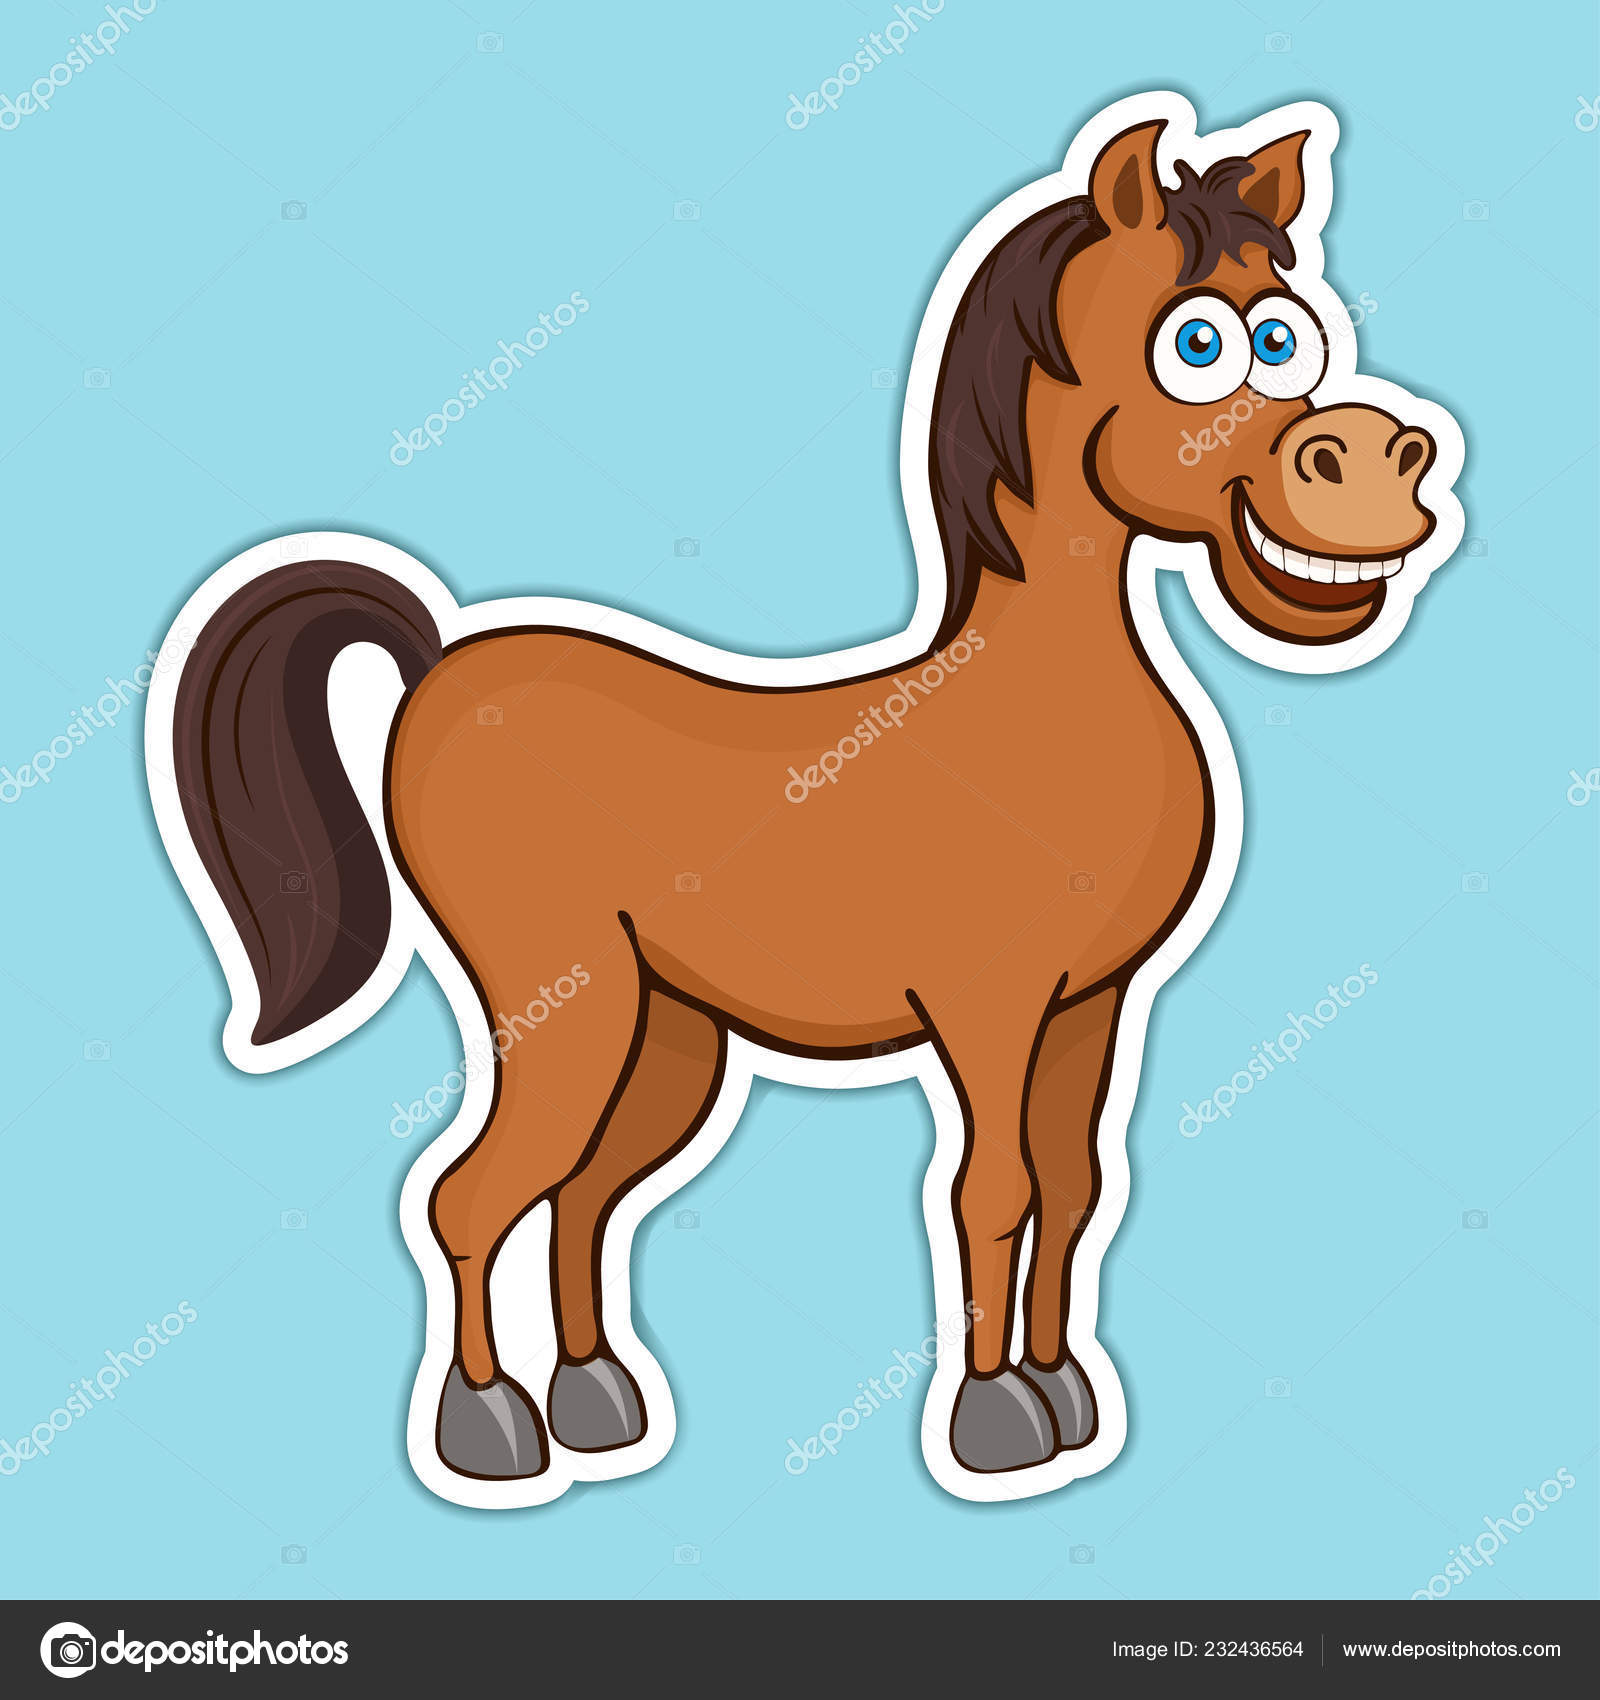 Painted Cute Funny Brown Smiling Horse Sticker Design Element Print Stock Photo C Eva Che 232436564